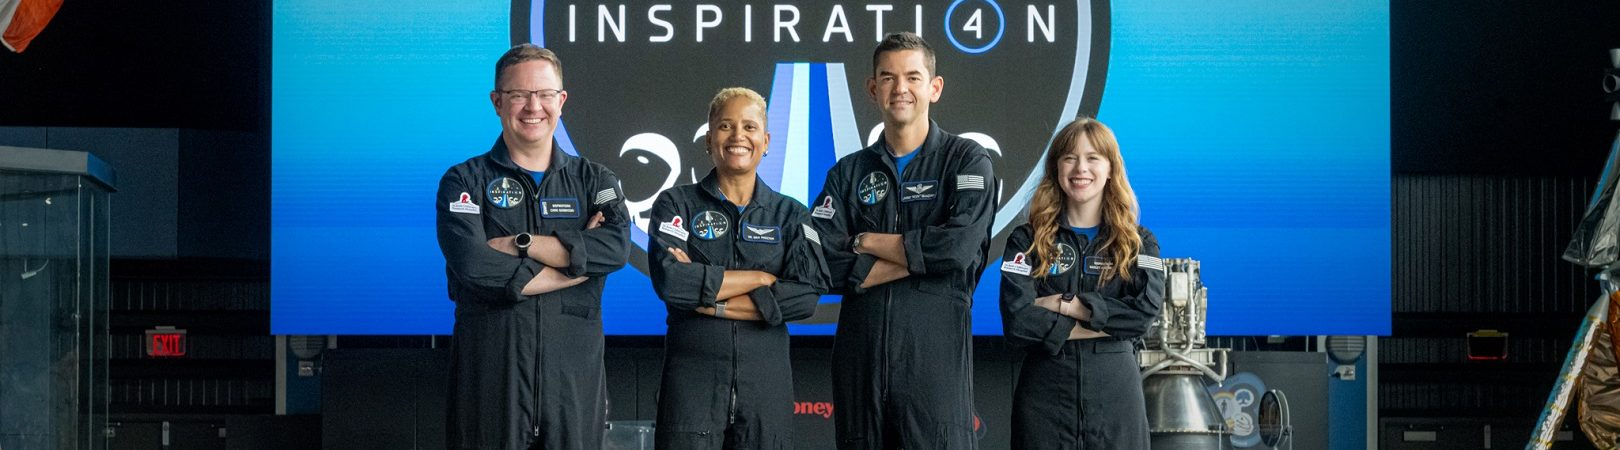 Countdown_Inspiration4_Mission_To_Space_DSC_2963-1620x450